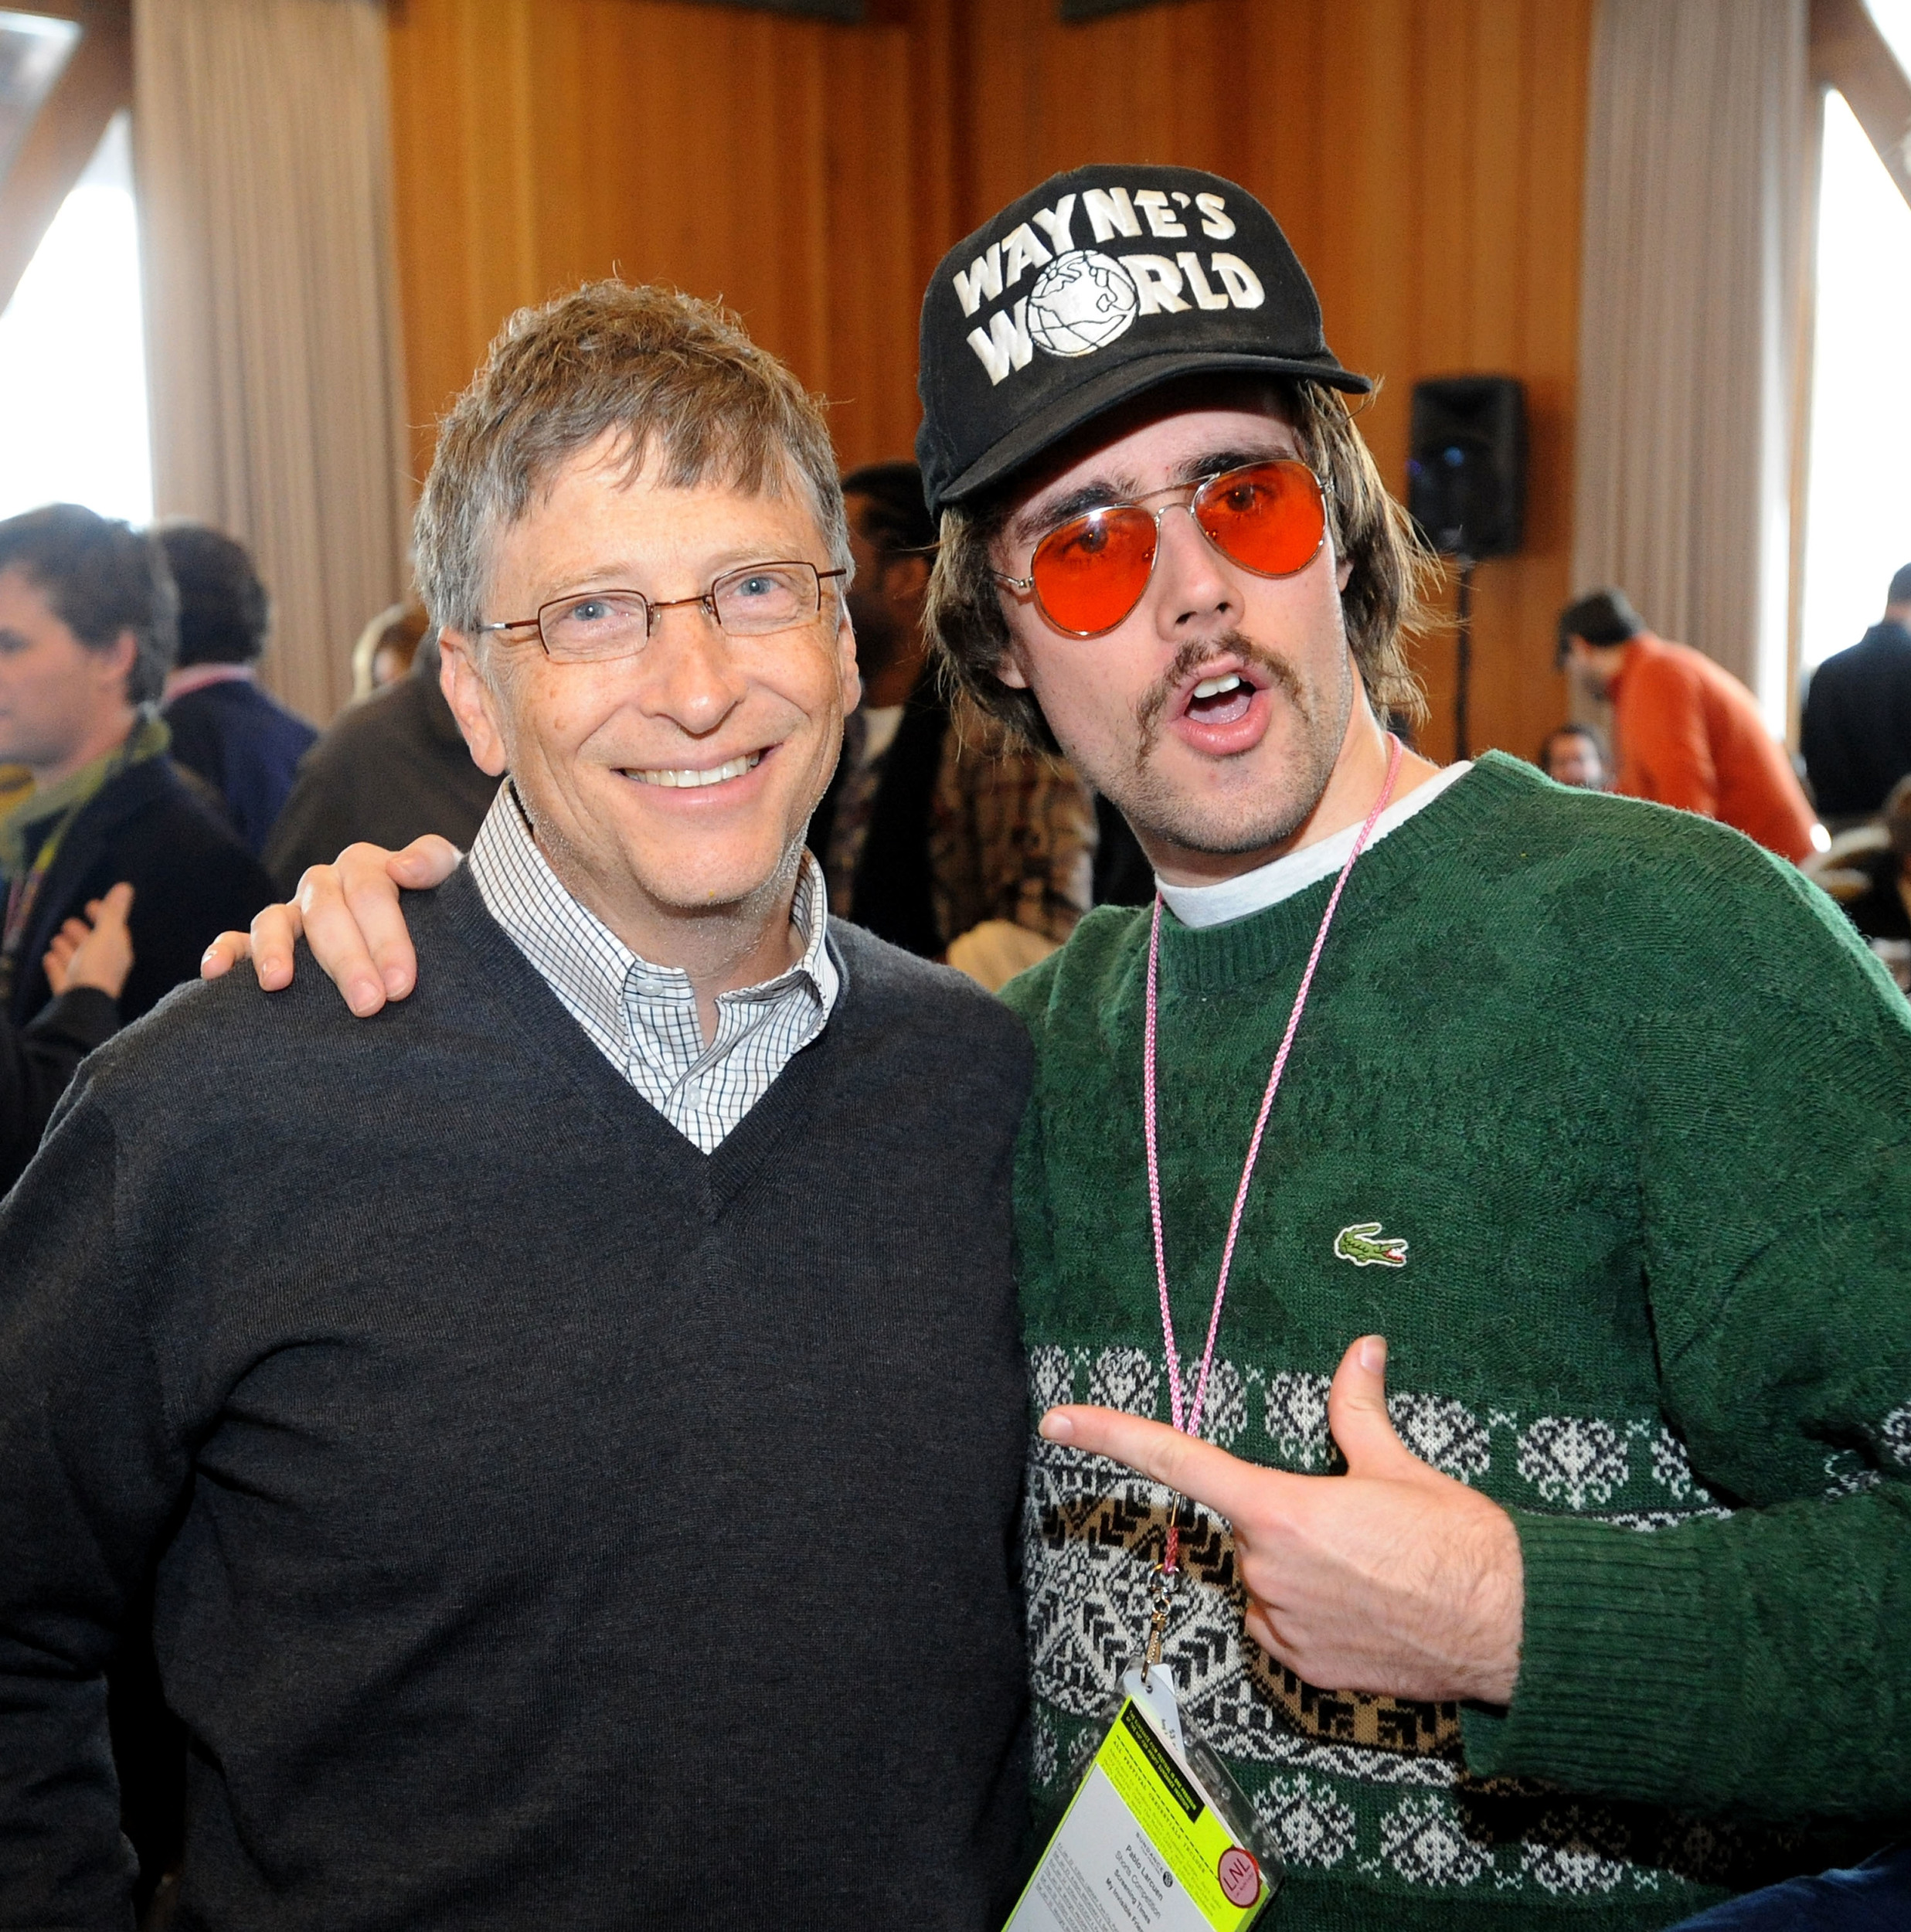 What makes Bill Gates so successful? 7 key habits, practices, and experiences